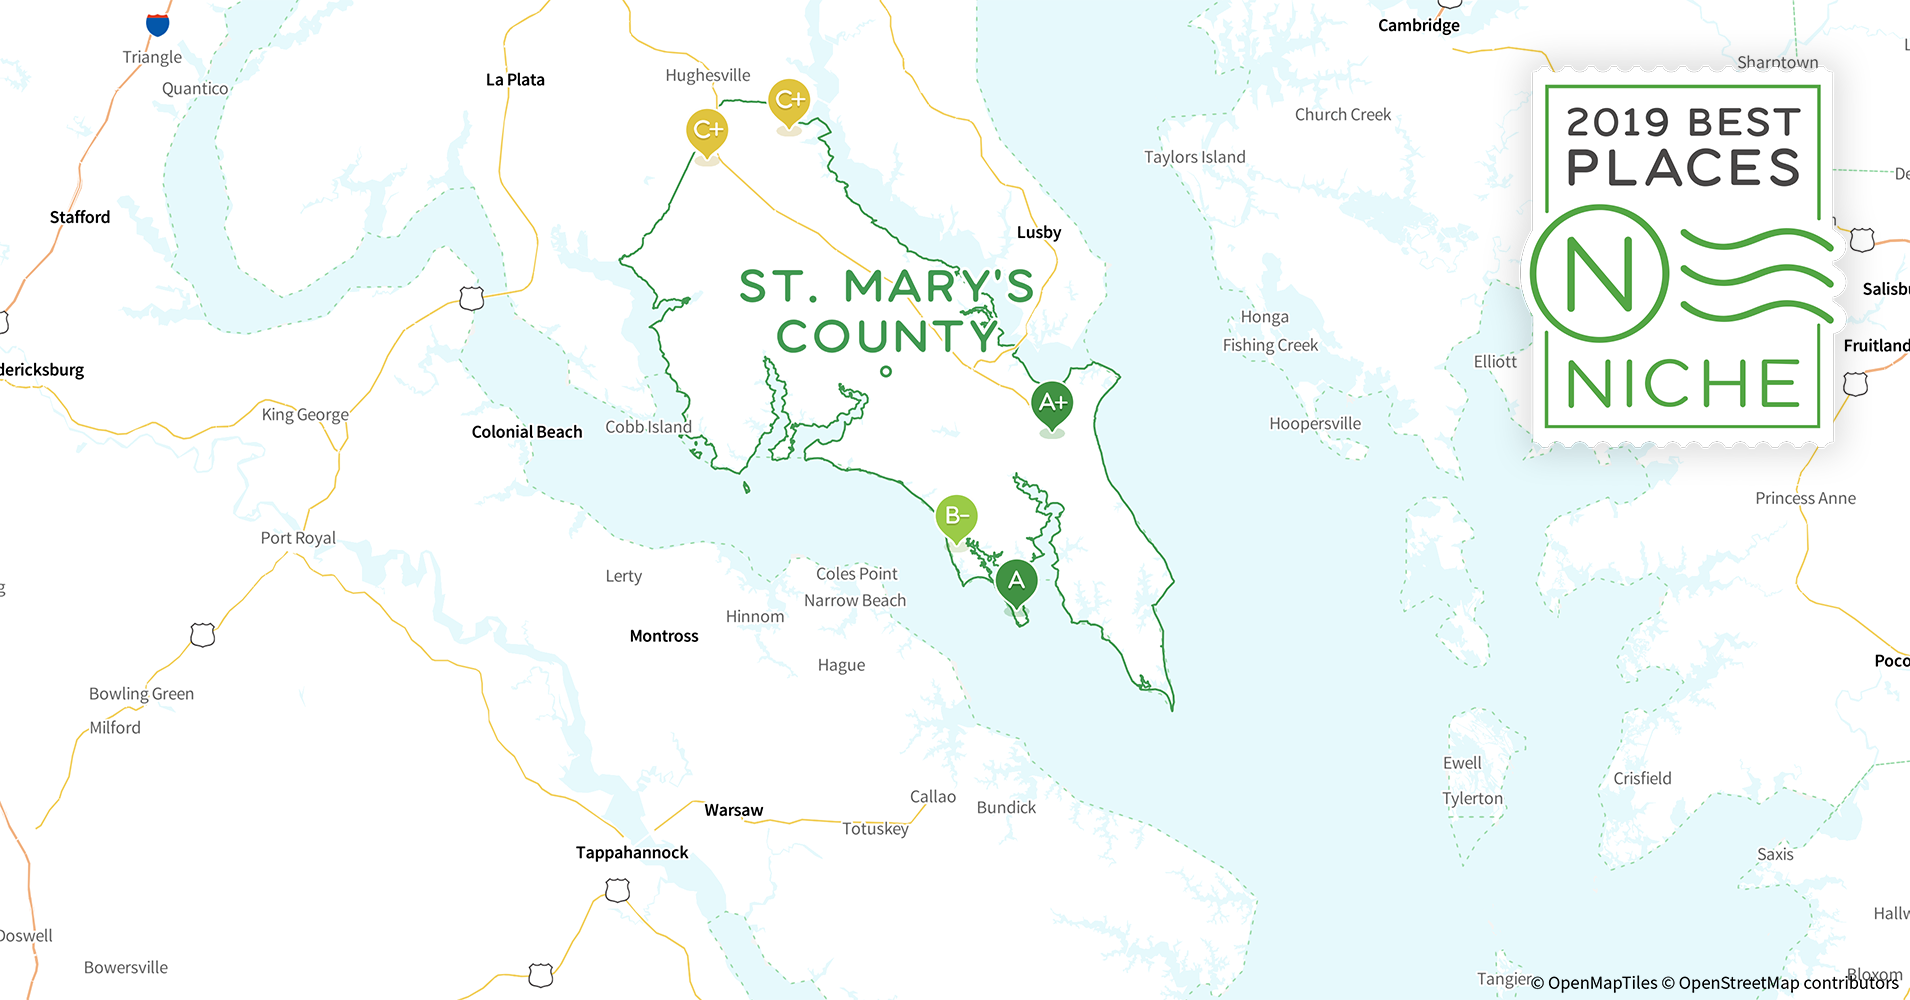 2019 Best Places to Live in St. Mary's County, MD - Niche Maps Of California Lexington Park Md on map of norfolk va, map of alexandria va, map of asheville nc, map of virginia beach va, map of salt lake city ut, map of charlottesville va, map of fredericksburg va, map of dover de, map of sandusky oh, map of forest acres sc, map of richmond va, map of pittsburgh pa, map of hopkinsville ky, map of reston va, map of lexington ky, map of spring tx, map of winchester va, map of roanoke va, map of arlington tx, map of chicago il,